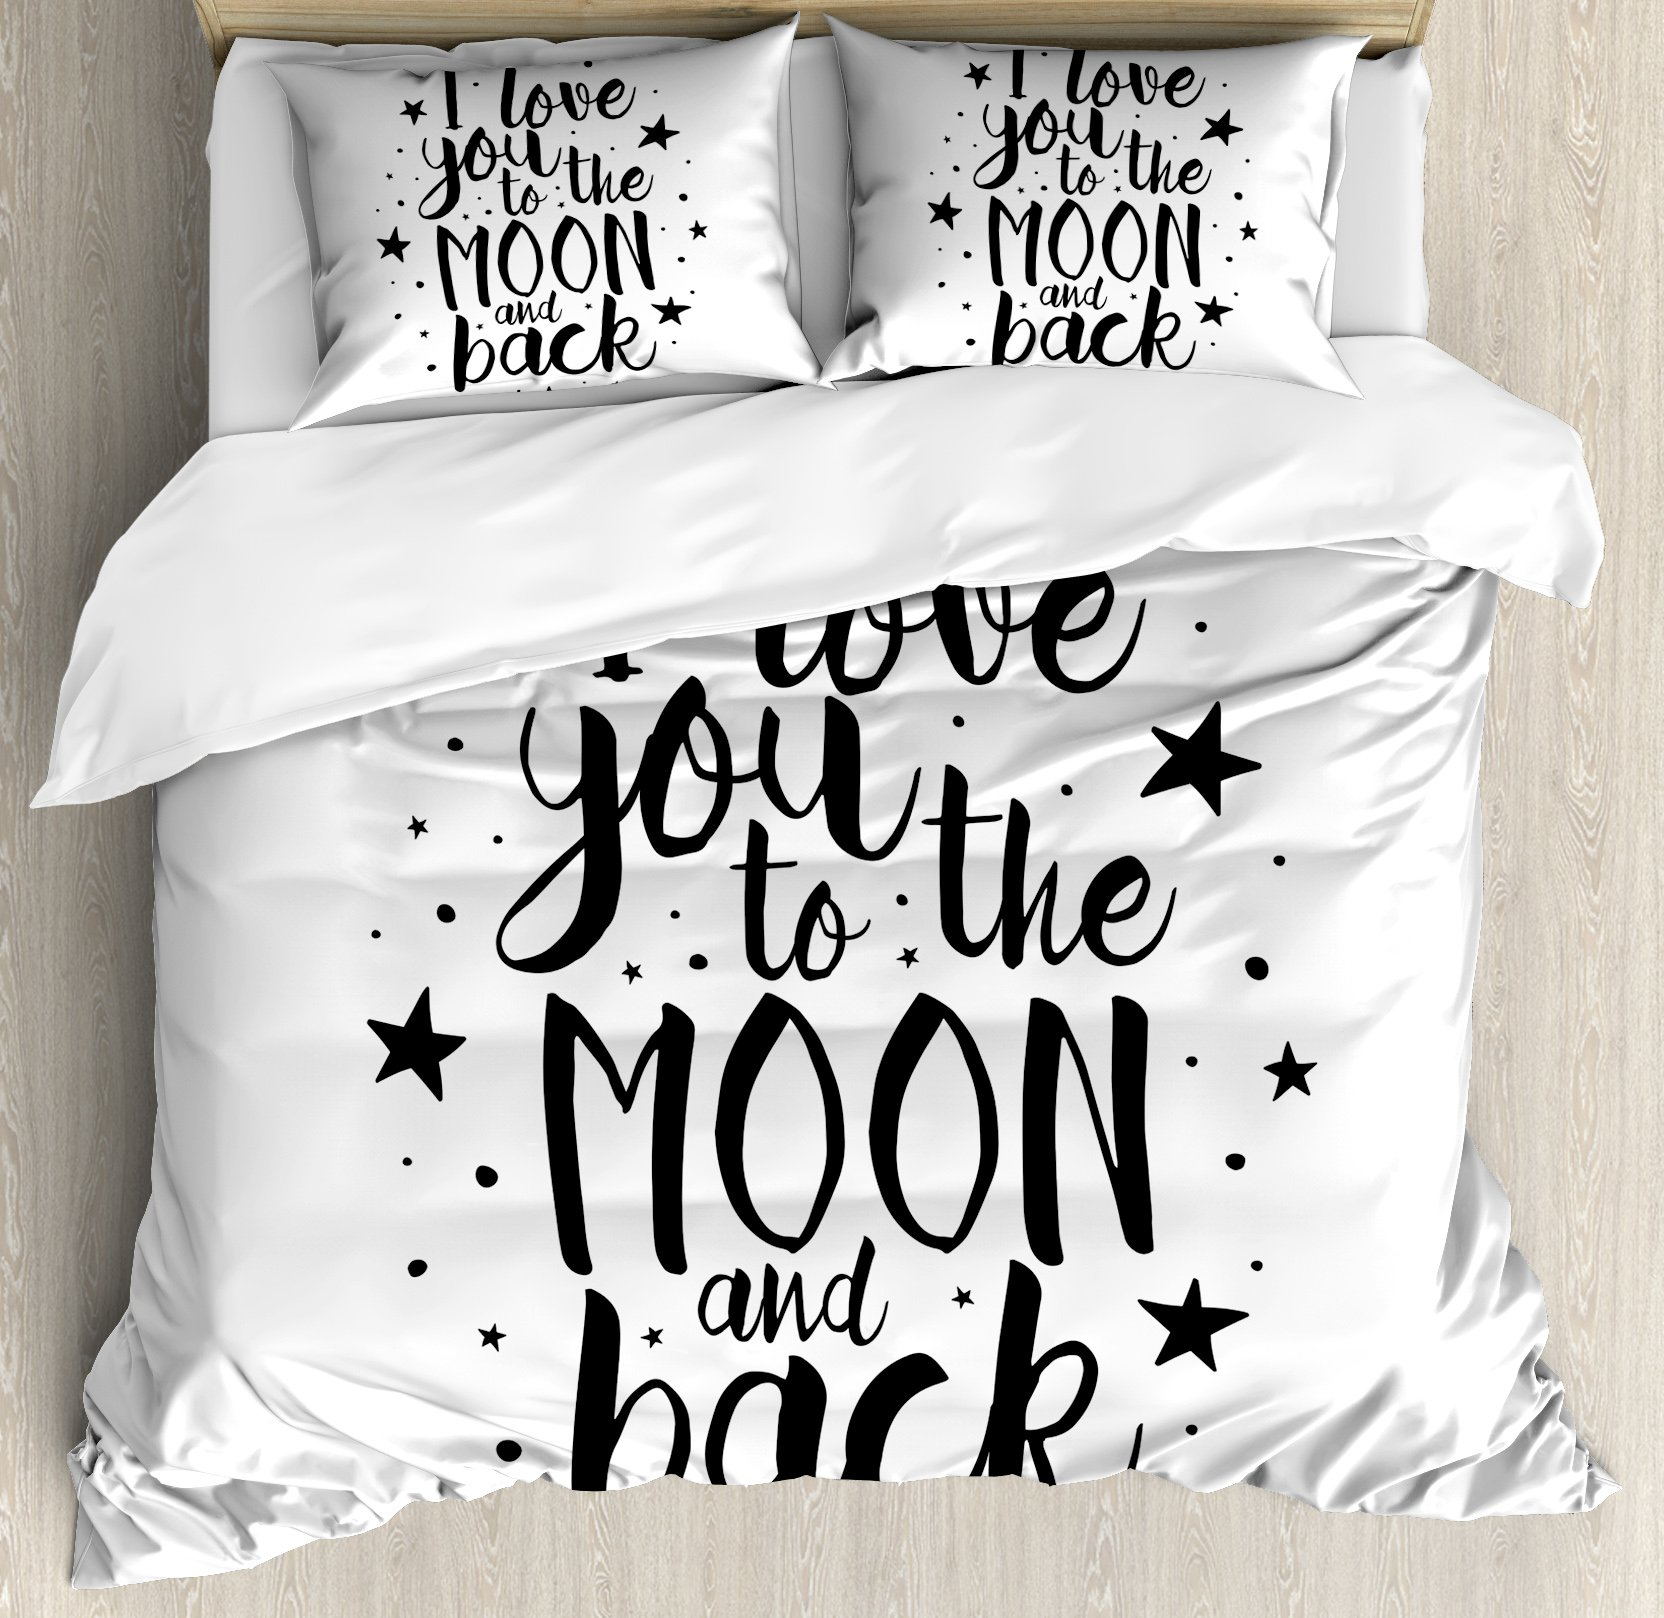 I Love You Queen Size Duvet Cover Set by Ambesonne, Romantic I Love You to the Moon and Back Motivational Lifestyle Quote Print, Decorative 3 Piece Bedding Set with 2 Pillow Shams, Black White